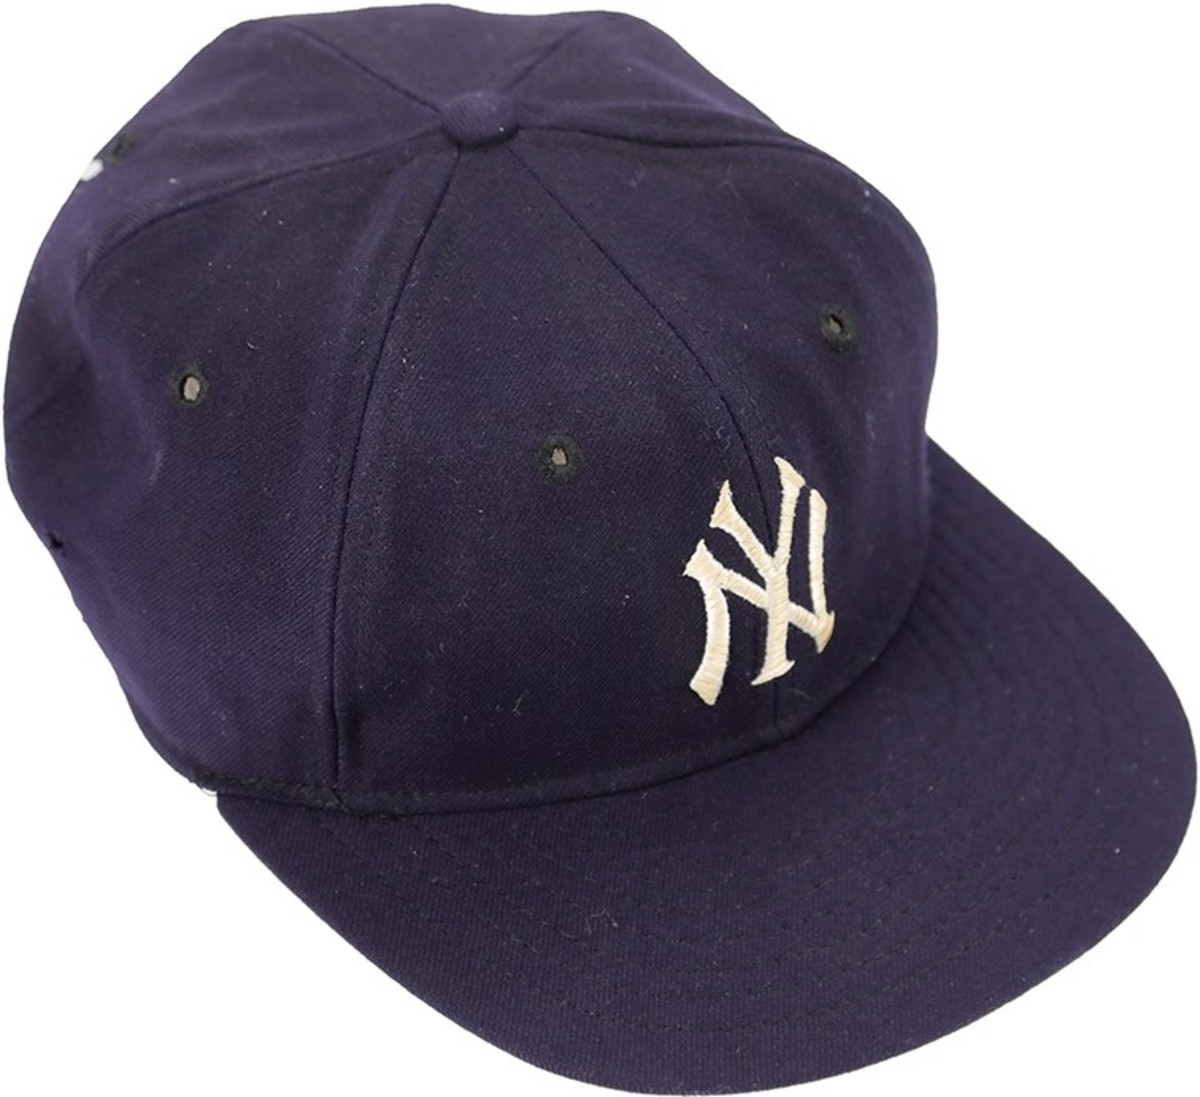 mantle cap